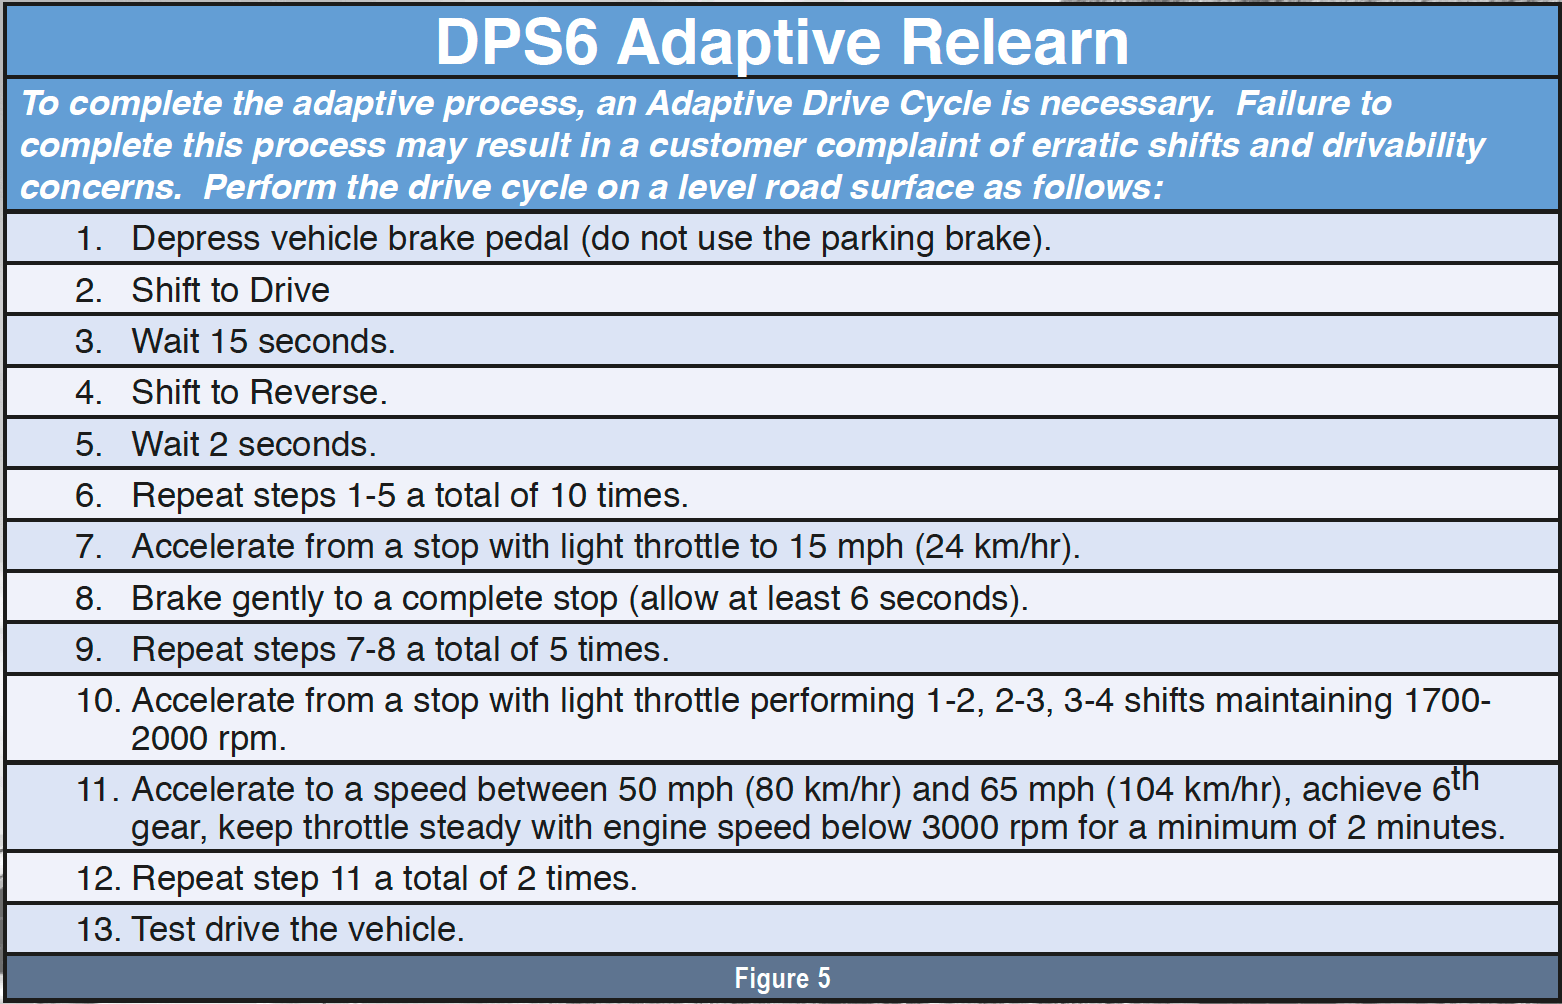 Gears Magazine | Diagnosing the DPS6: Knowing the Good Helps